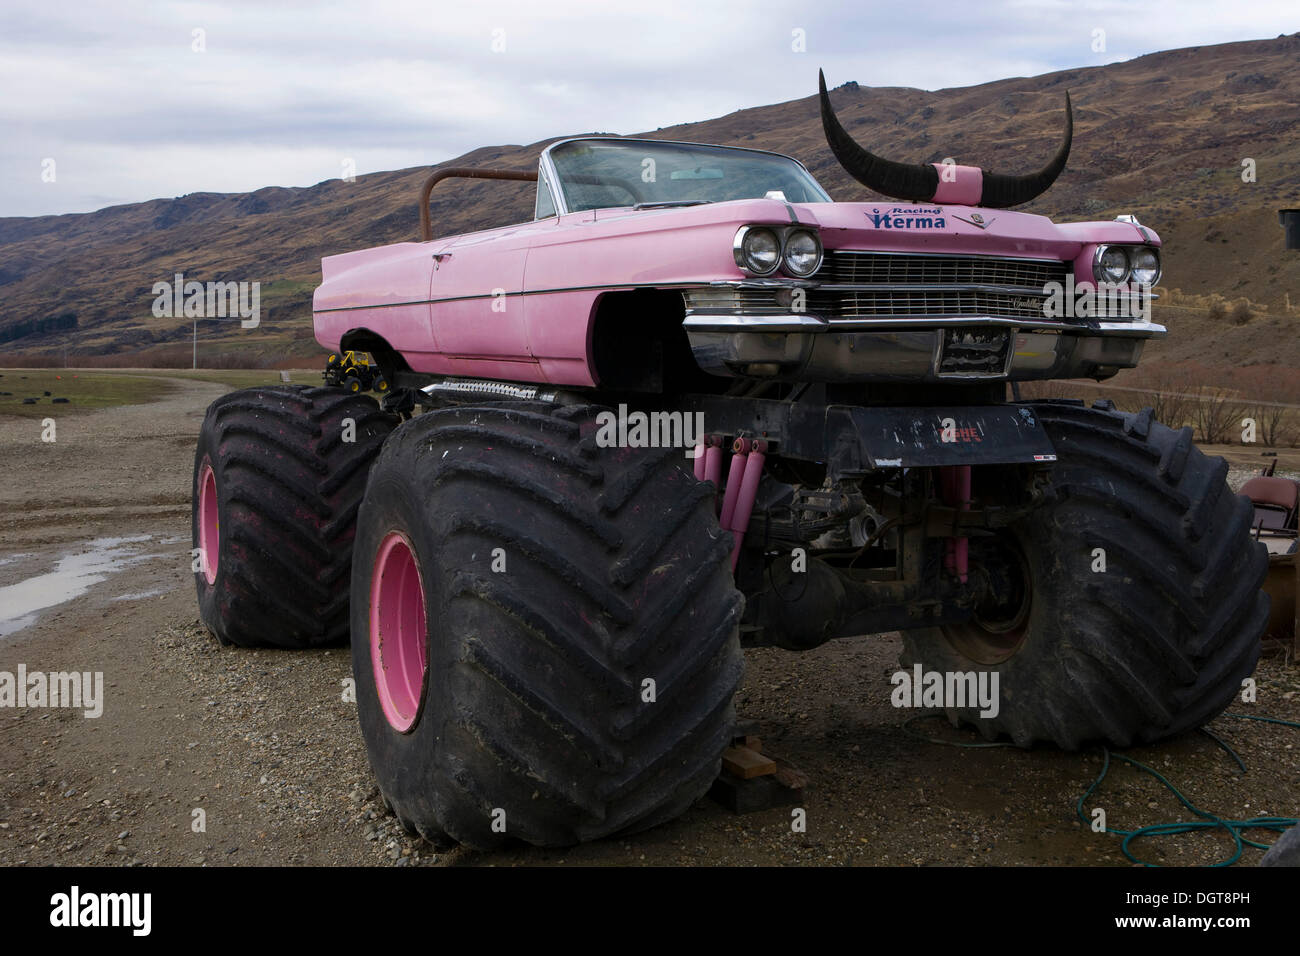 4x4 Monster Truck High Resolution Stock Photography And Images Alamy